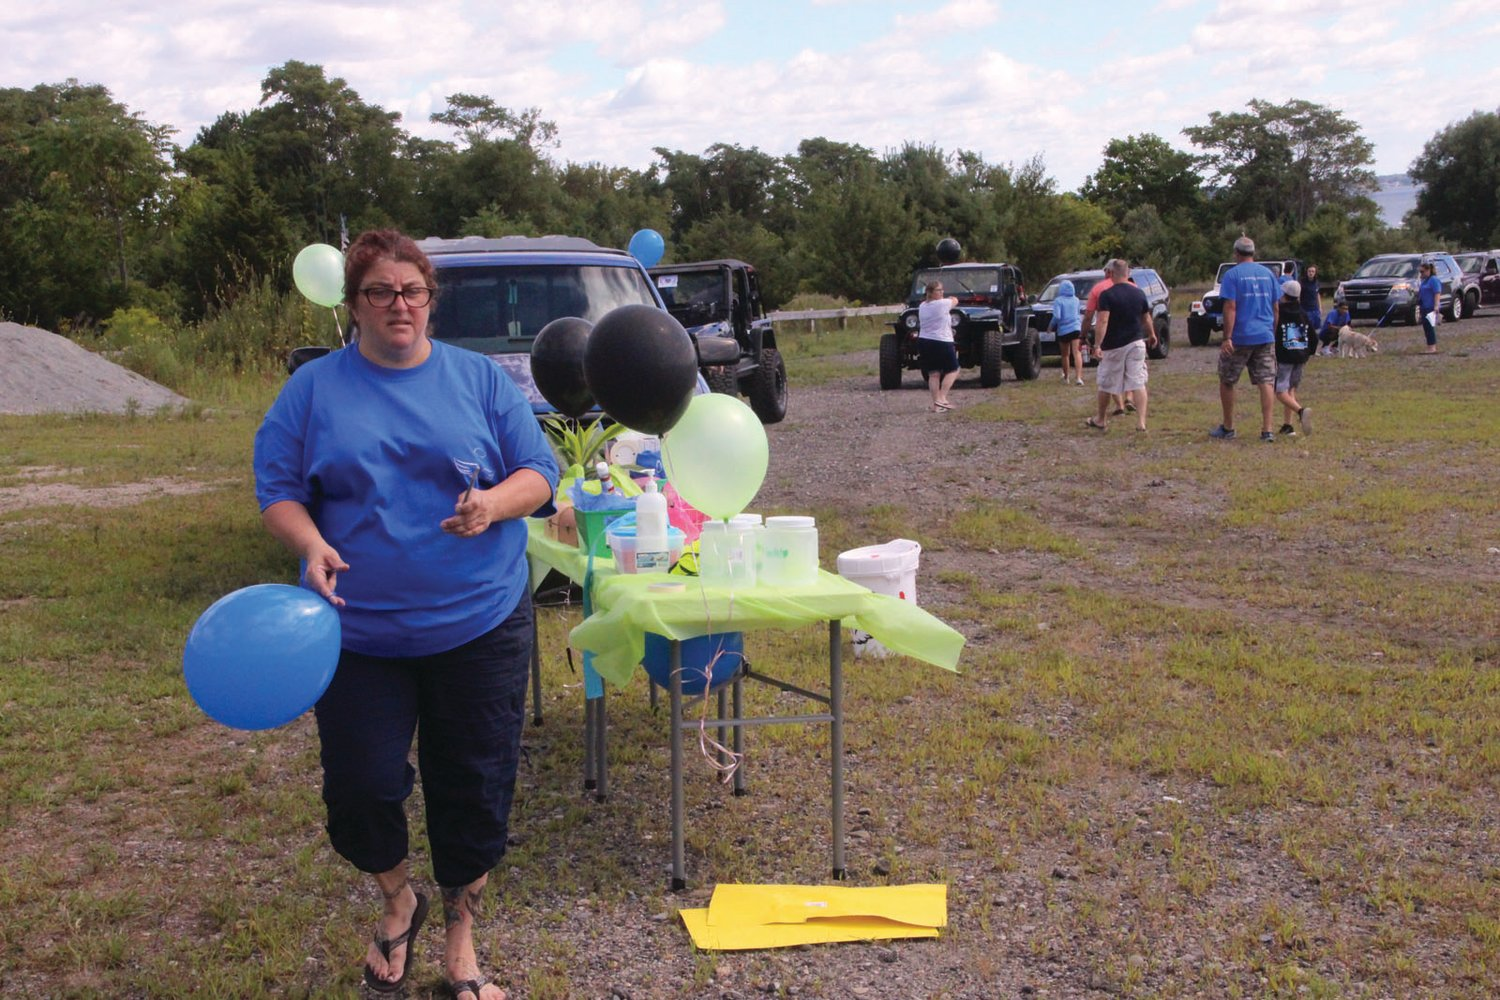 PUTTING ON A BRIGHT FACE: Balloons and messages written on car windows lent color to a somber occasion. Michelle Ciociola, pictured was the primary organizer of the event.